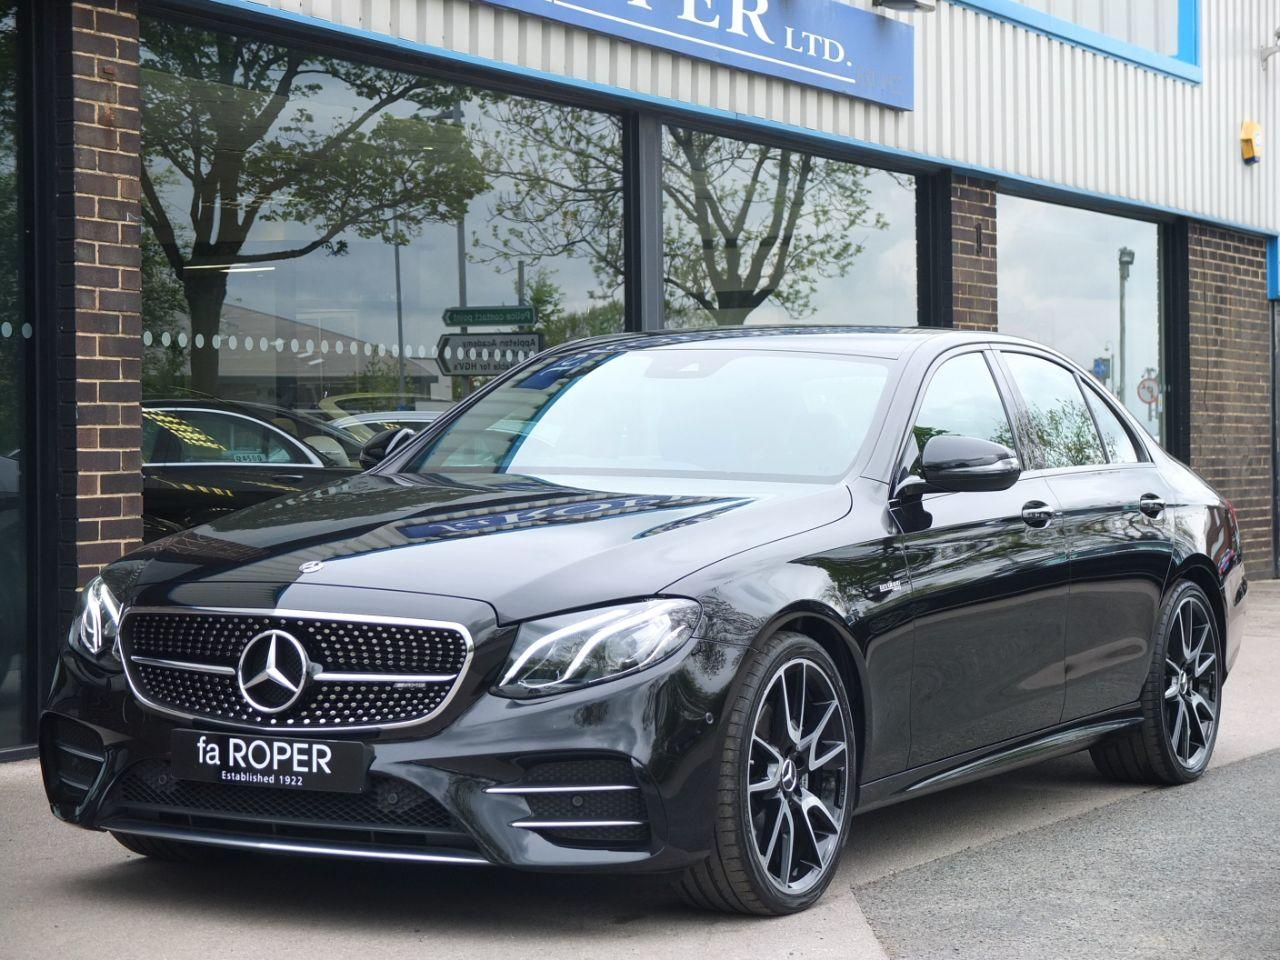 Mercedes-Benz E Class 3.0 E43 AMG 4MATIC 9G-tronic 401 hp Saloon Petrol Obsidian Black MetallicMercedes-Benz E Class 3.0 E43 AMG 4MATIC 9G-tronic 401 hp Saloon Petrol Obsidian Black Metallic at fa Roper Ltd Bradford